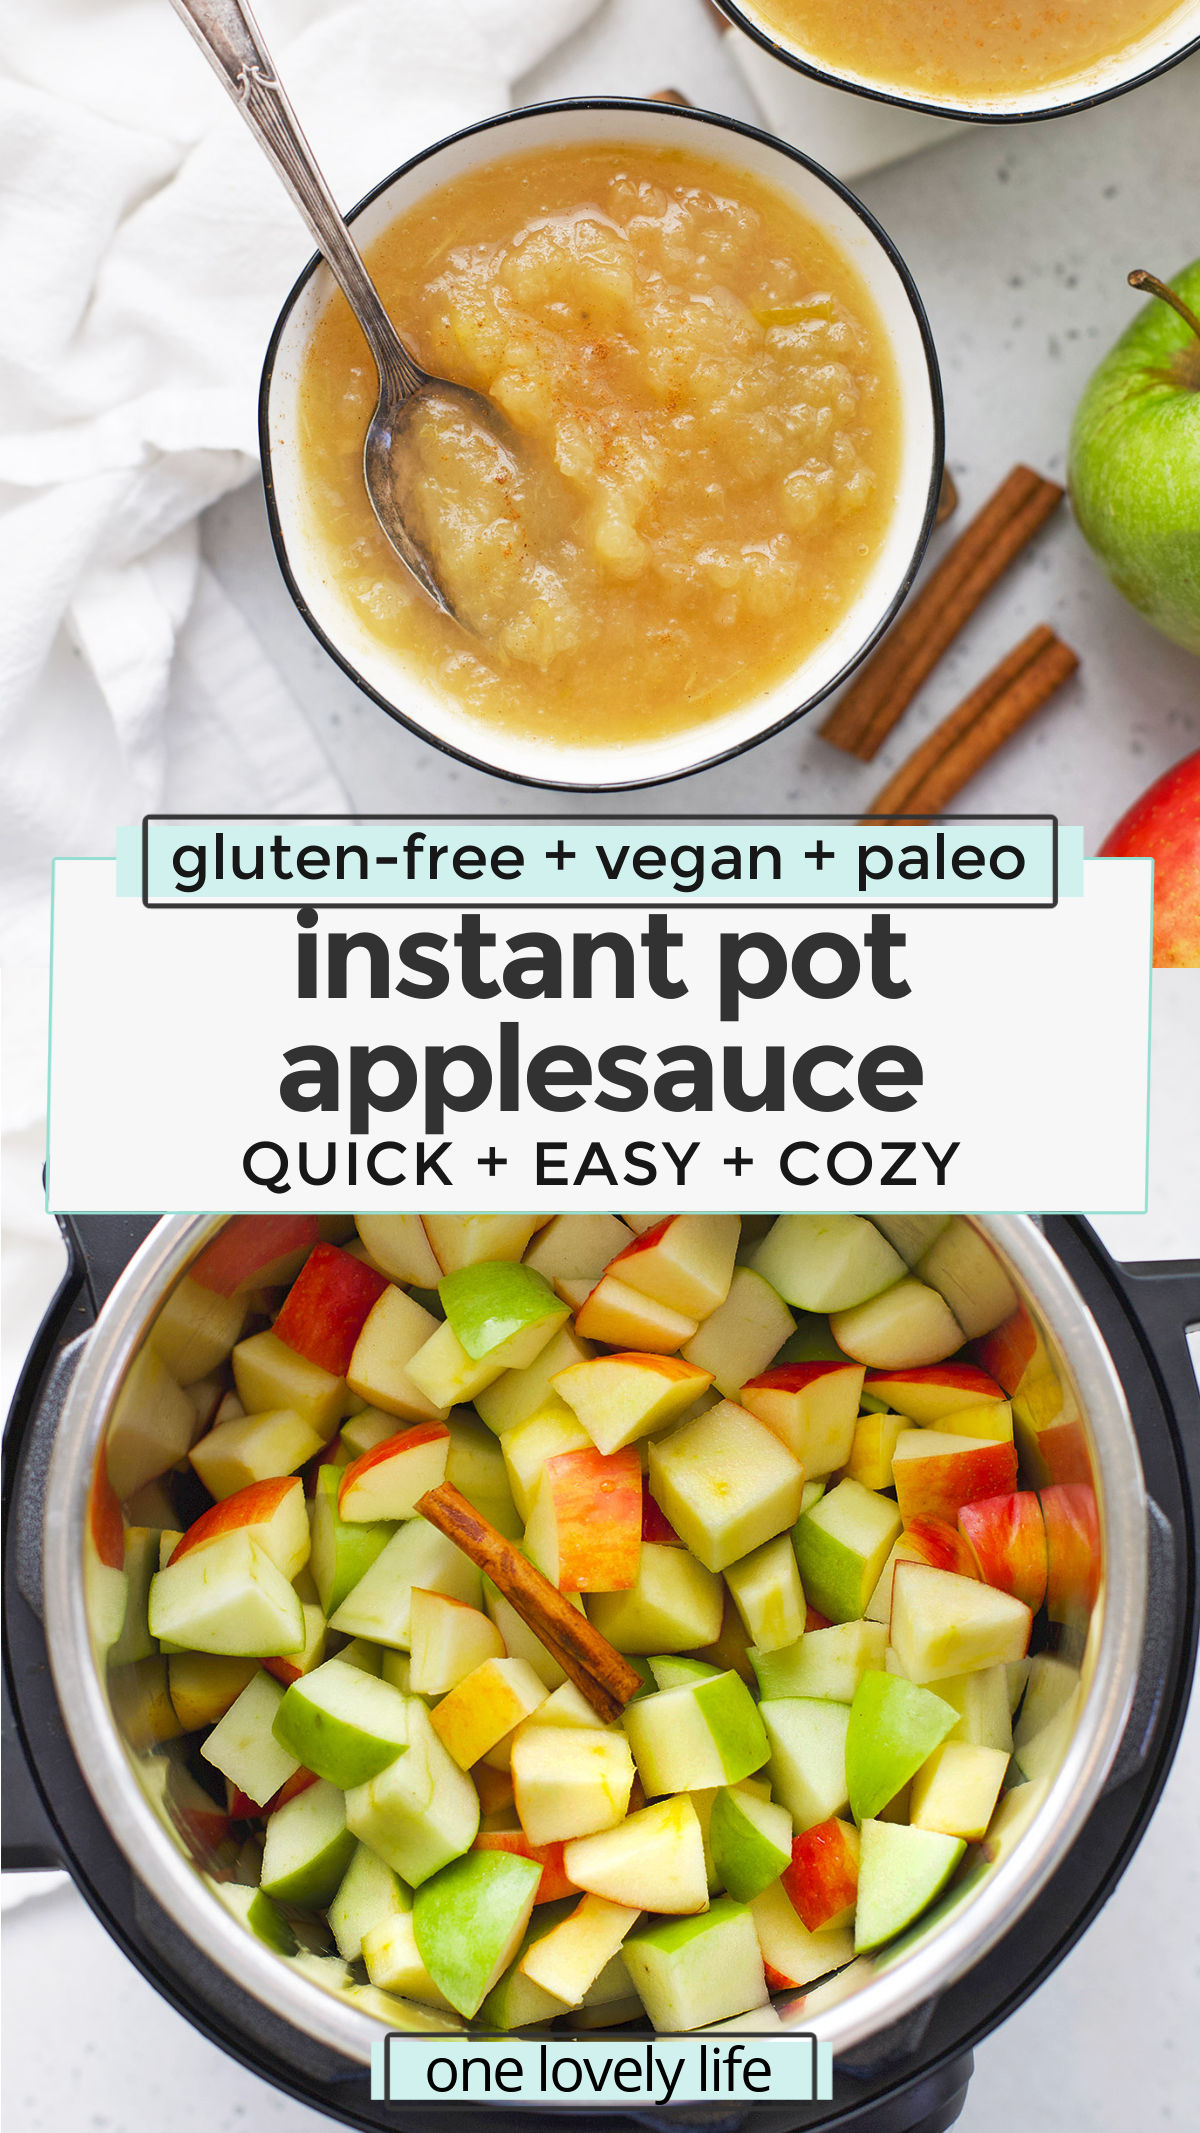 Instant Pot Applesauce - Homemade applesauce made in the pressure cooker! This recipe is easy, delicious, and great for beginners! (Paleo, Vegan) // Instant Pot Applesauce Recipe // No Sugar Added Applesauce // Unsweetened Instant Pot Applesauce #applesauce #instantpot #pressurecooker #sidedish #applerecipes #paleo #vegan